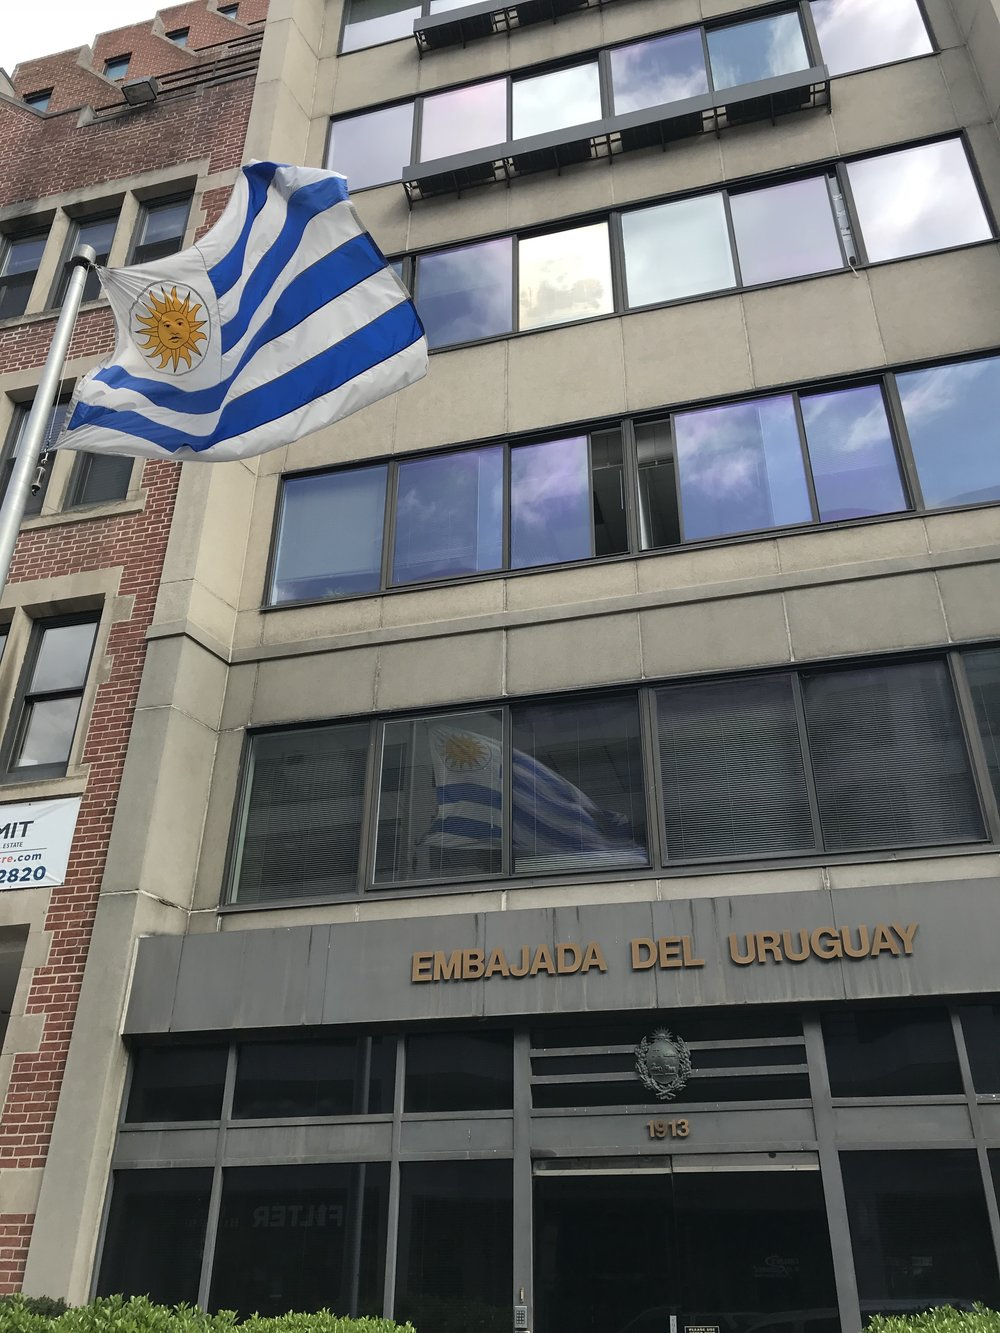 The Embassy of Uruguay.